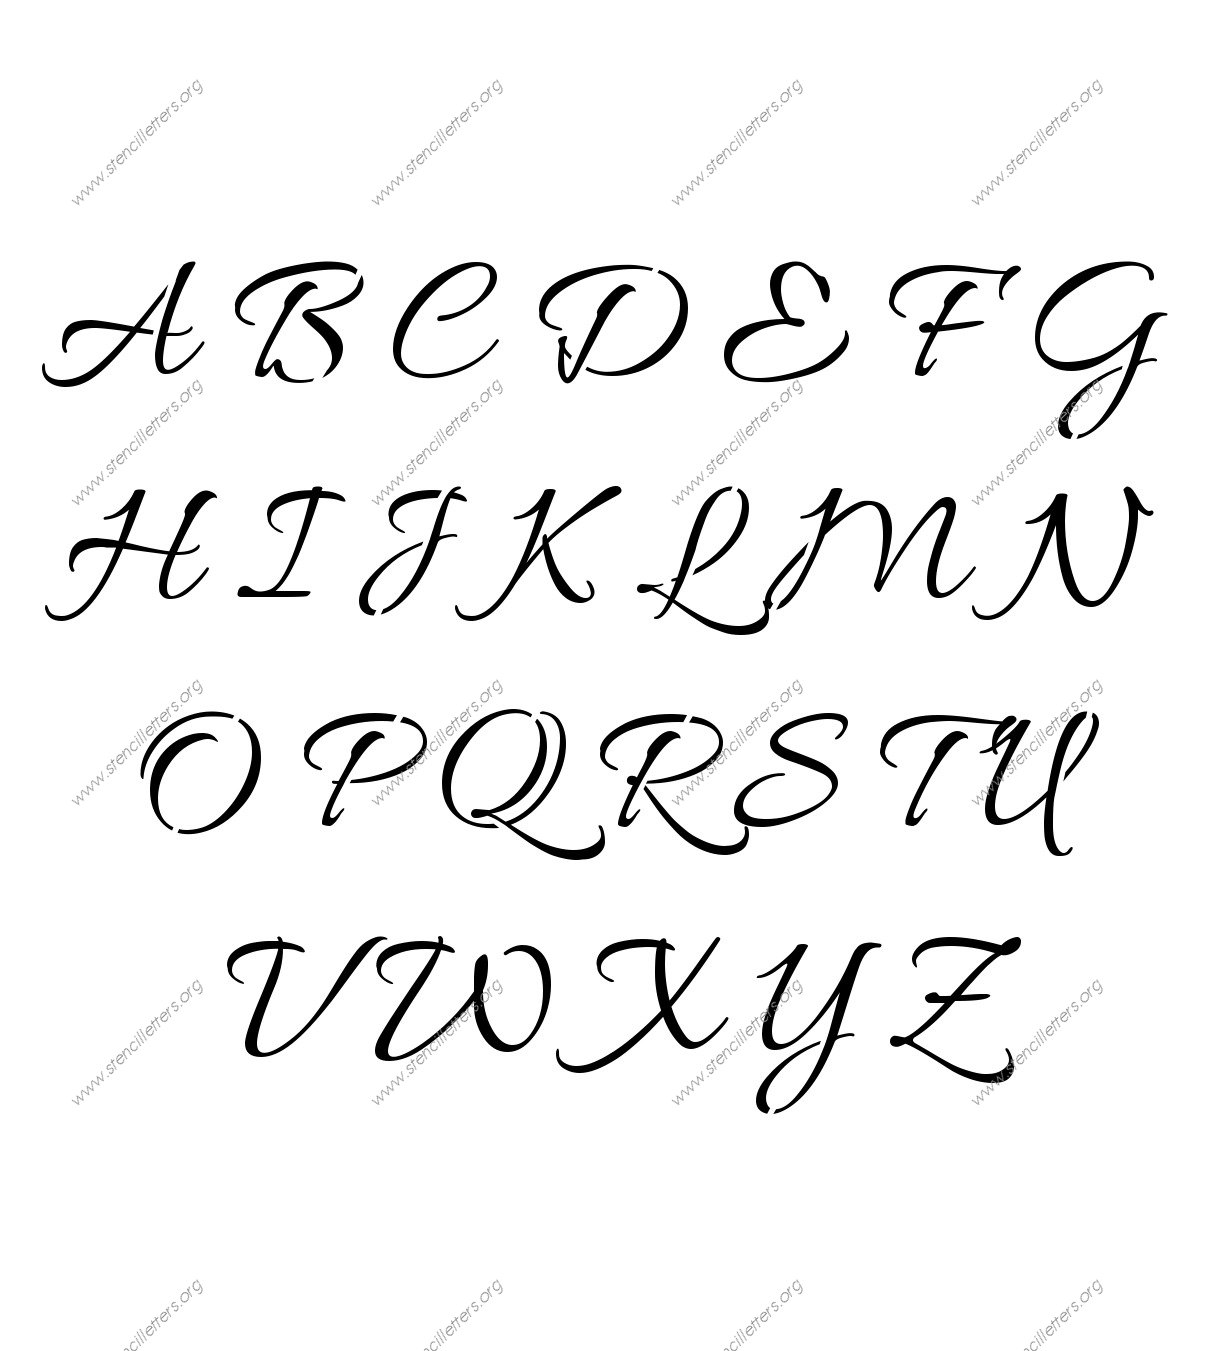 Connected Cursive Uppercase Amp Lowercase Letter Stencils A Z 1 4 To 12 Inch Sizes